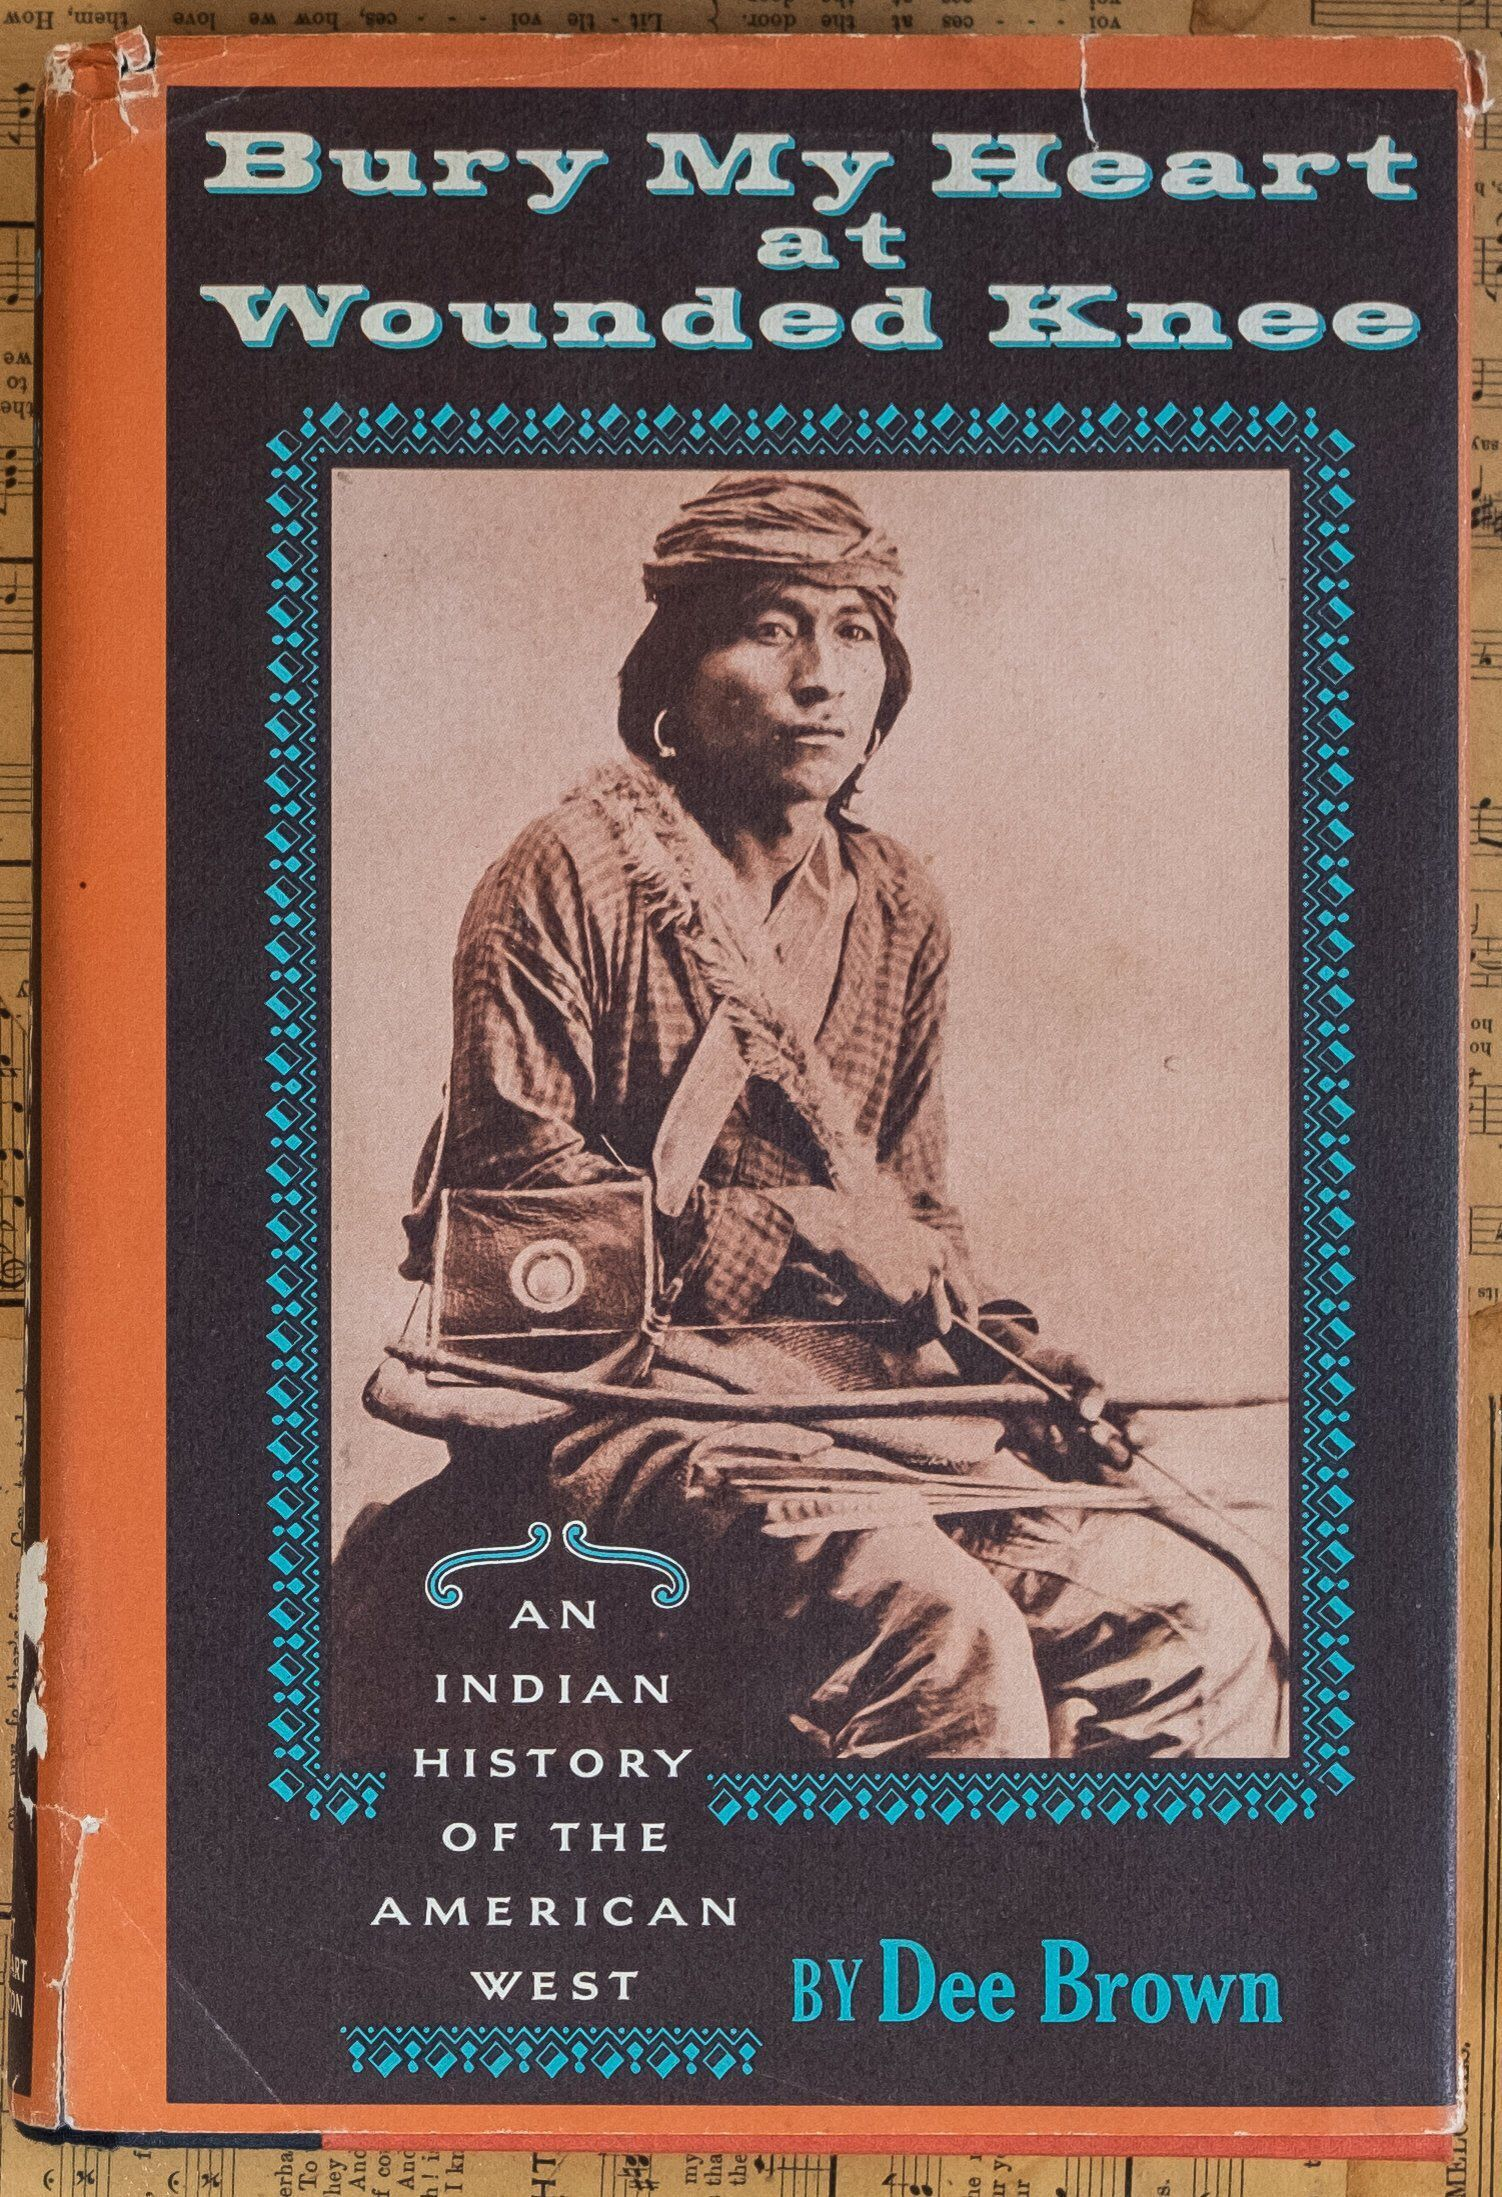 Bury my heart at wounded knee by dee brown 2nd printing